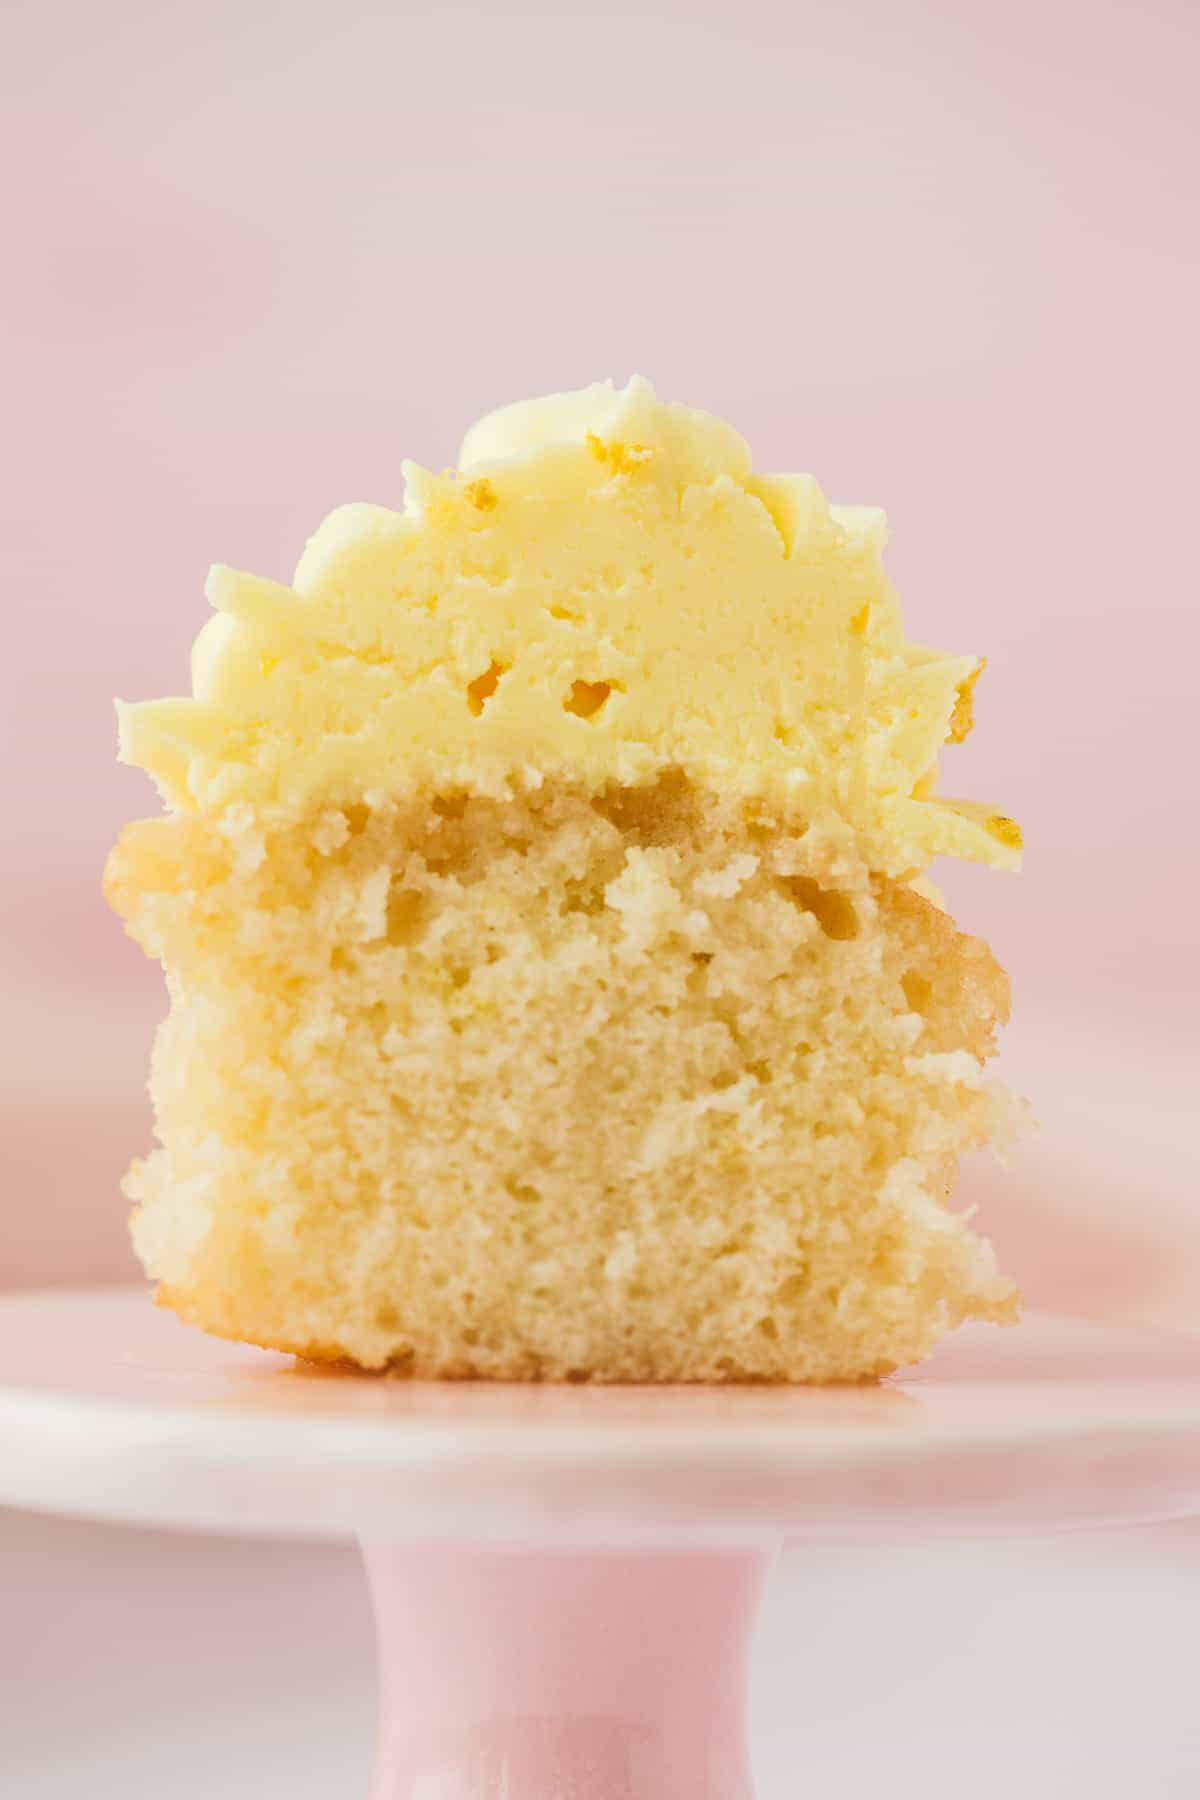 A lemon drizzle cupcake that has been sliced open to reveal it's soft moist centre.